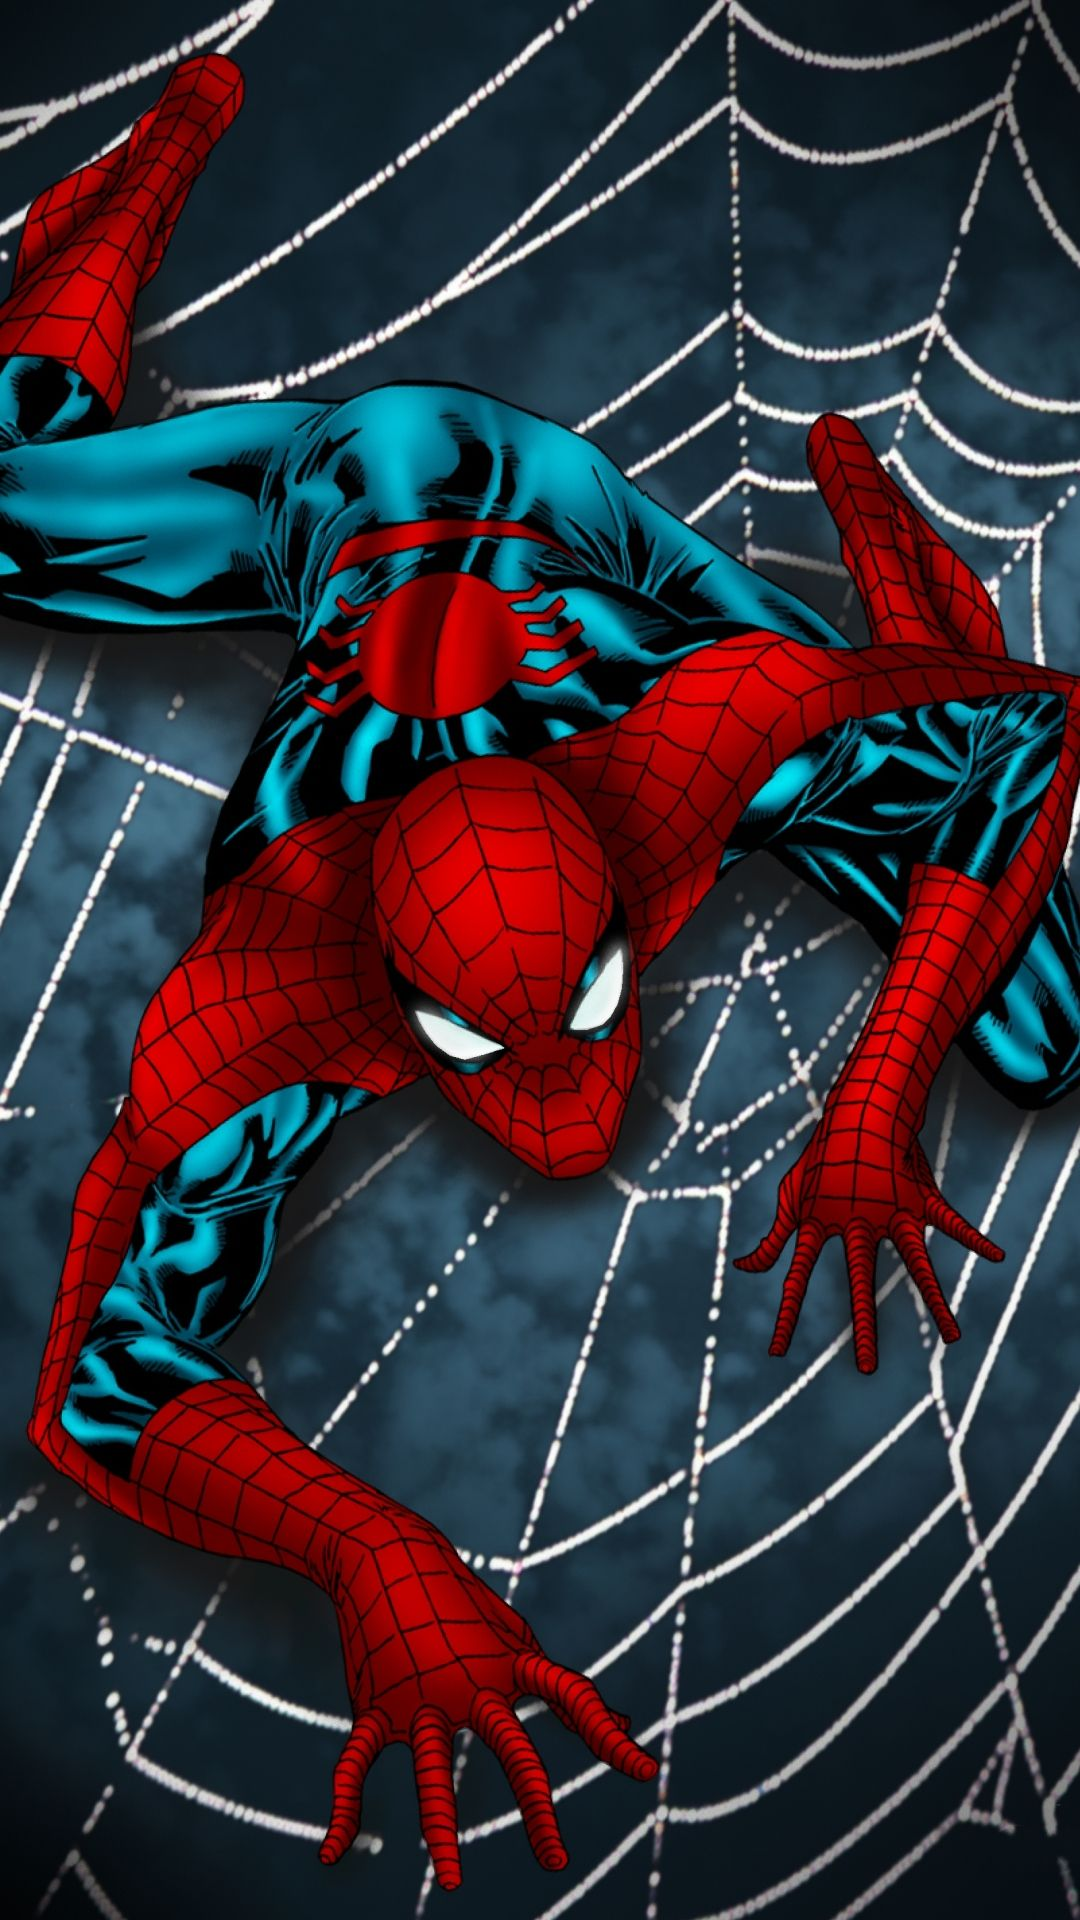 Spider Man Live Wallpaper Download Spider Man Live Wallpaper